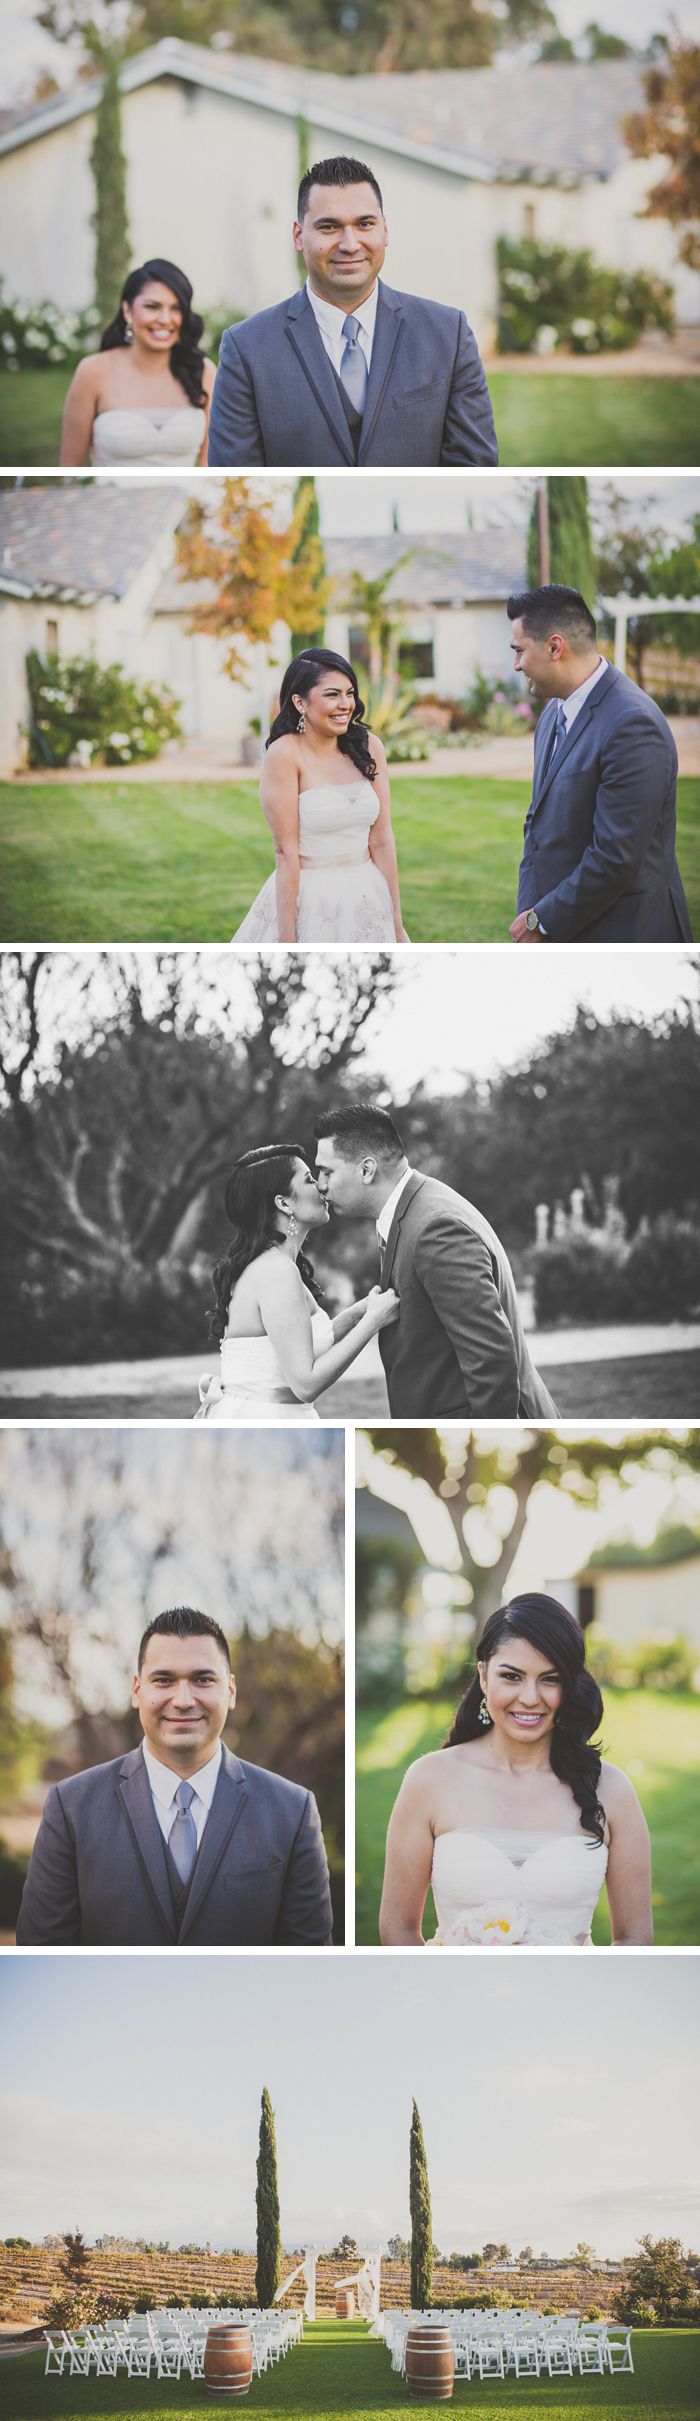 Bel Vino Winery Wedding Photos Temecula